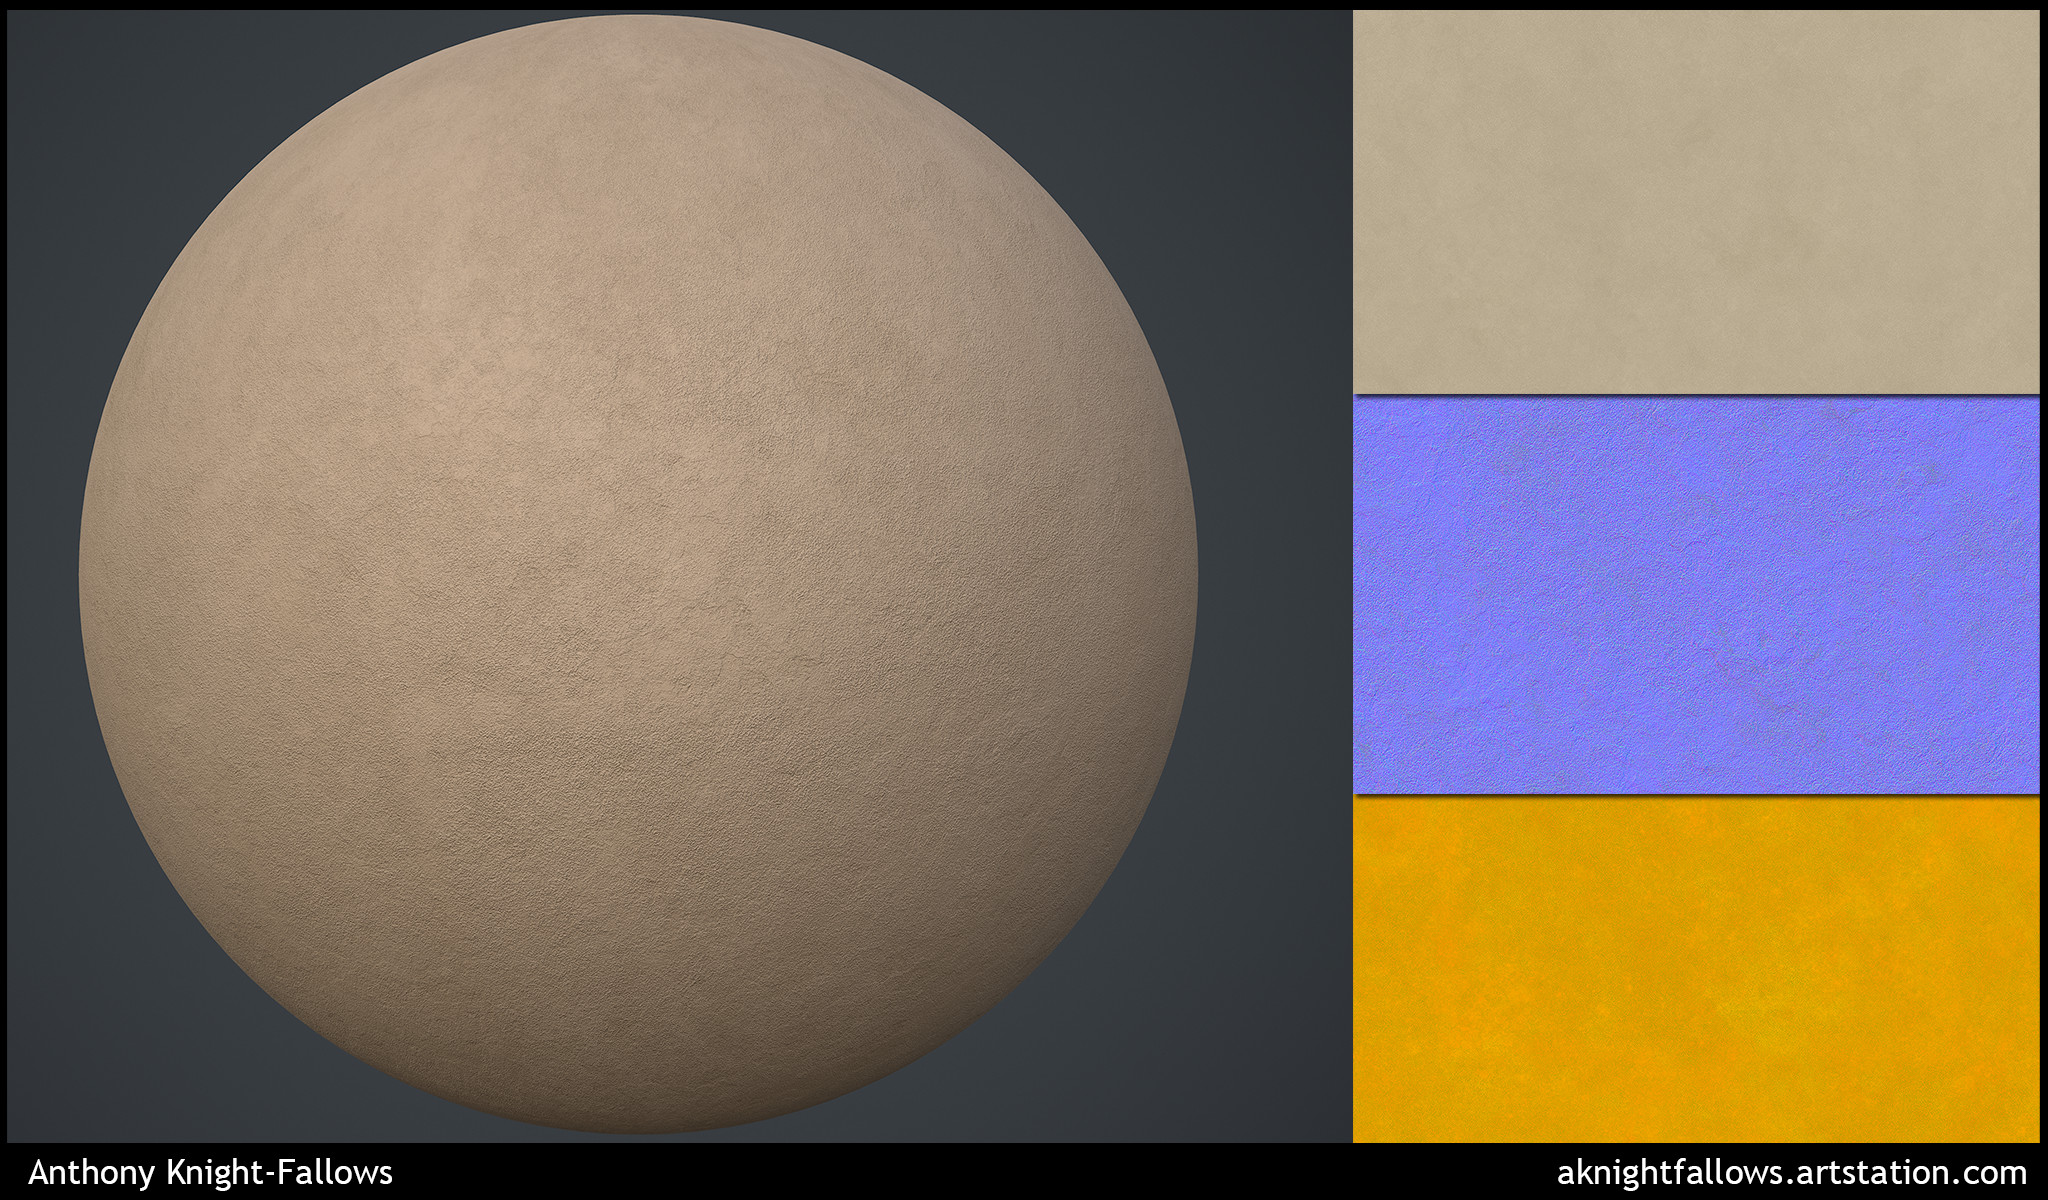 Fully procedural materials authored within Designer.